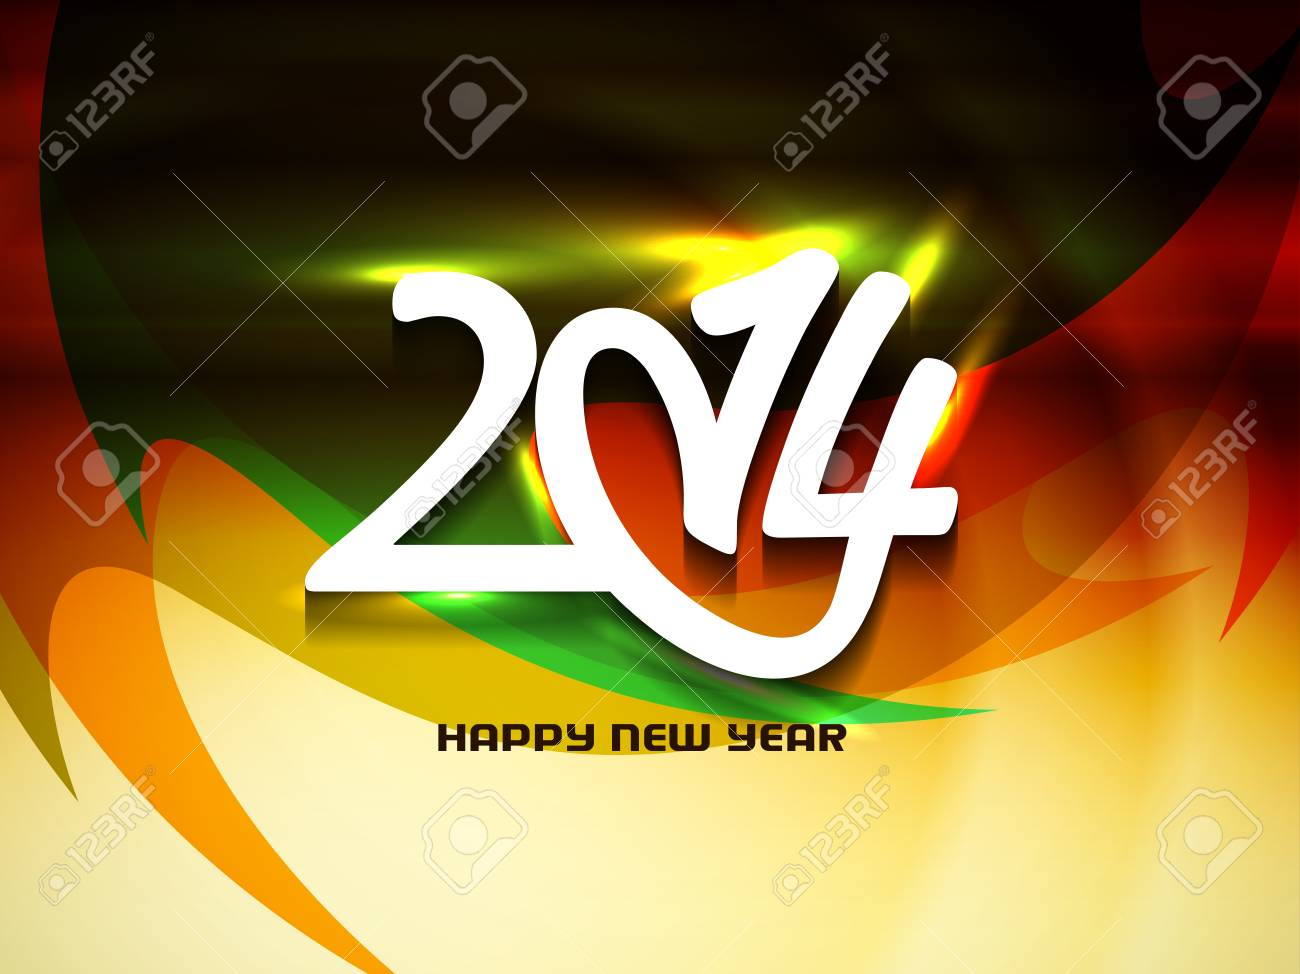 Elegant happy new year 2014 design Stock Vector - 24026817